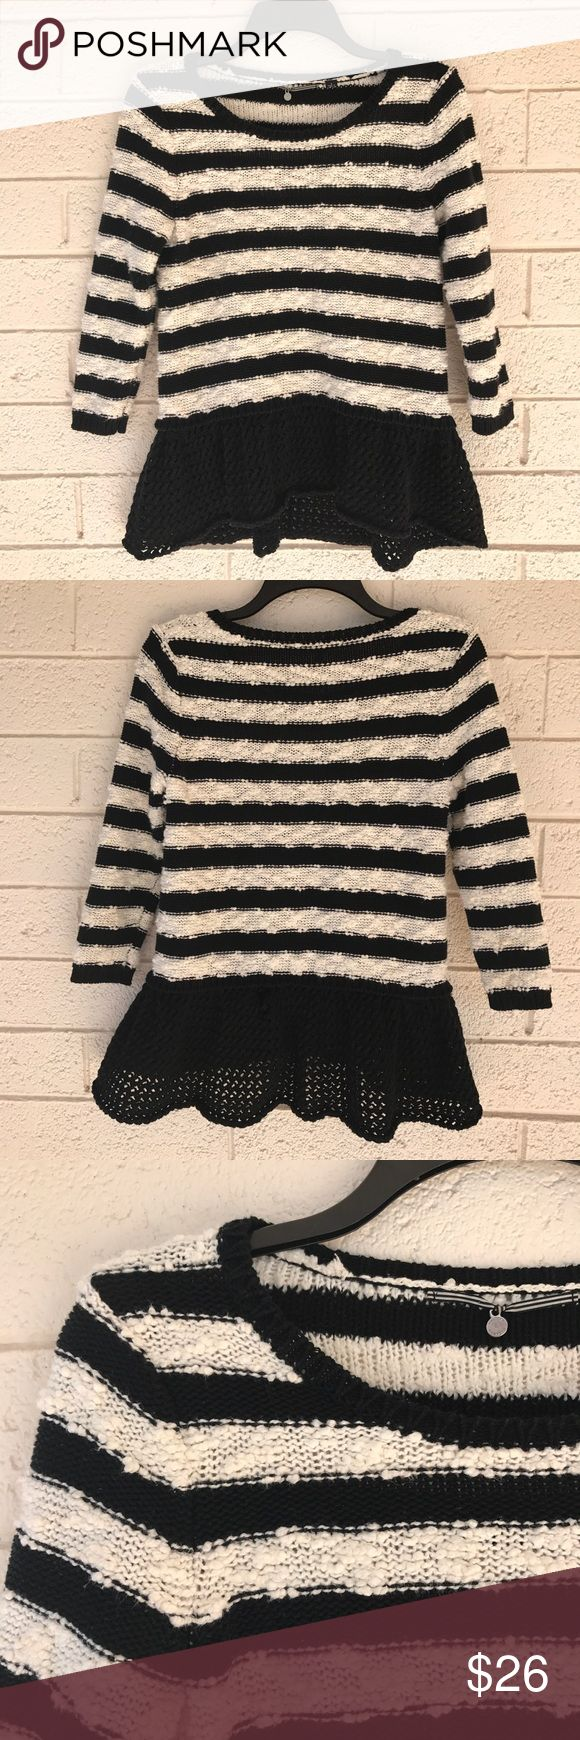 "Anthropologie Knitted & Knotted Striped Sweater Beautiful chunky knit striped sweater from Anthropologie. Features a black peplum skirt and cropped 3/4 sleeves. In great condition, only small flaw is at the top of the ""skirt"" part in the back - there is a little place where the yarn stretched. Not noticeable, but worth pointing out! Size small, fits XS or small. Anthropologie Sweaters Crew & Scoop Necks"